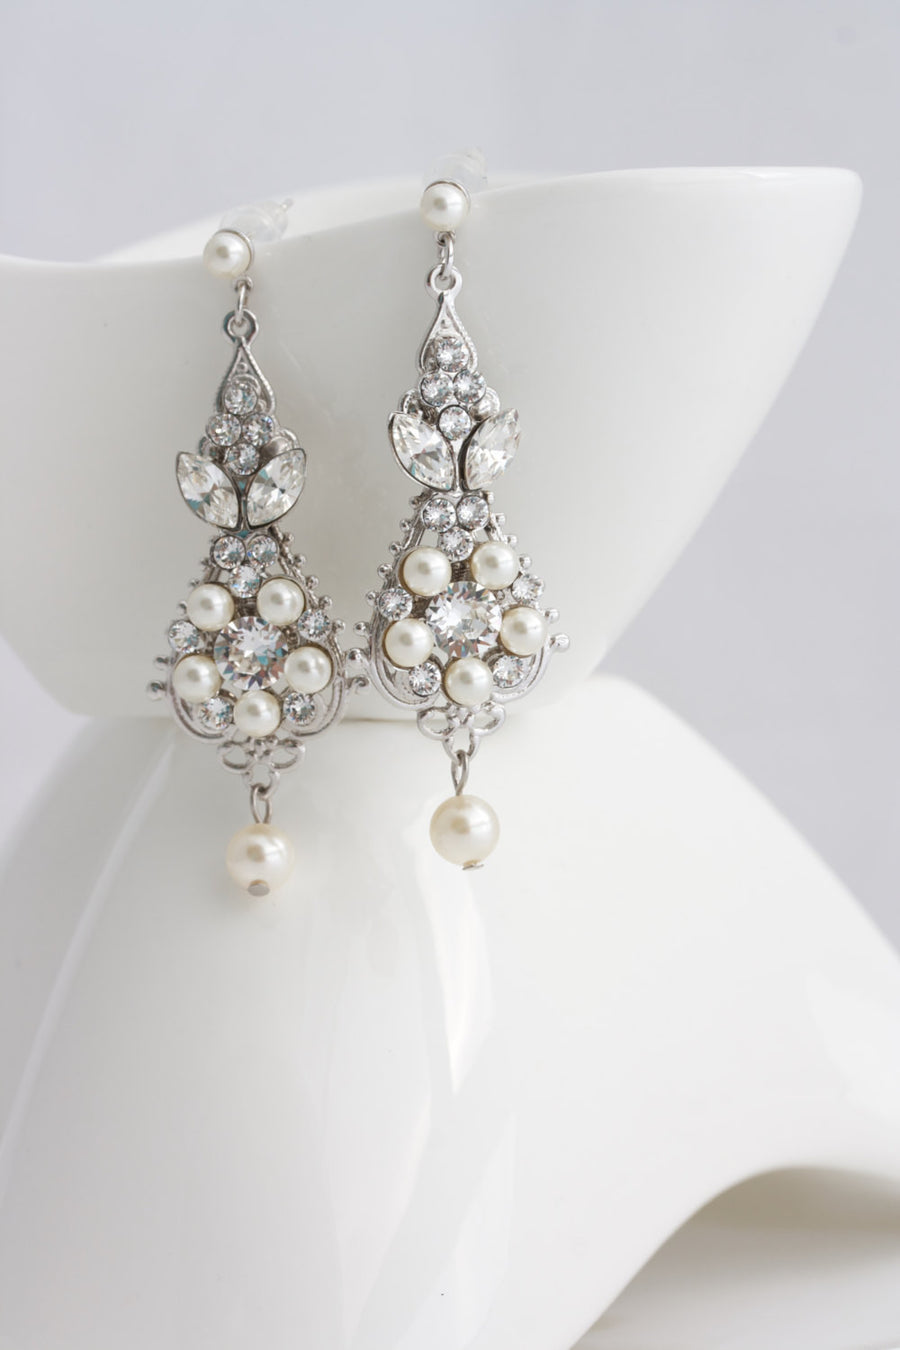 Paris Wedding Earrings - Lulu Splendor